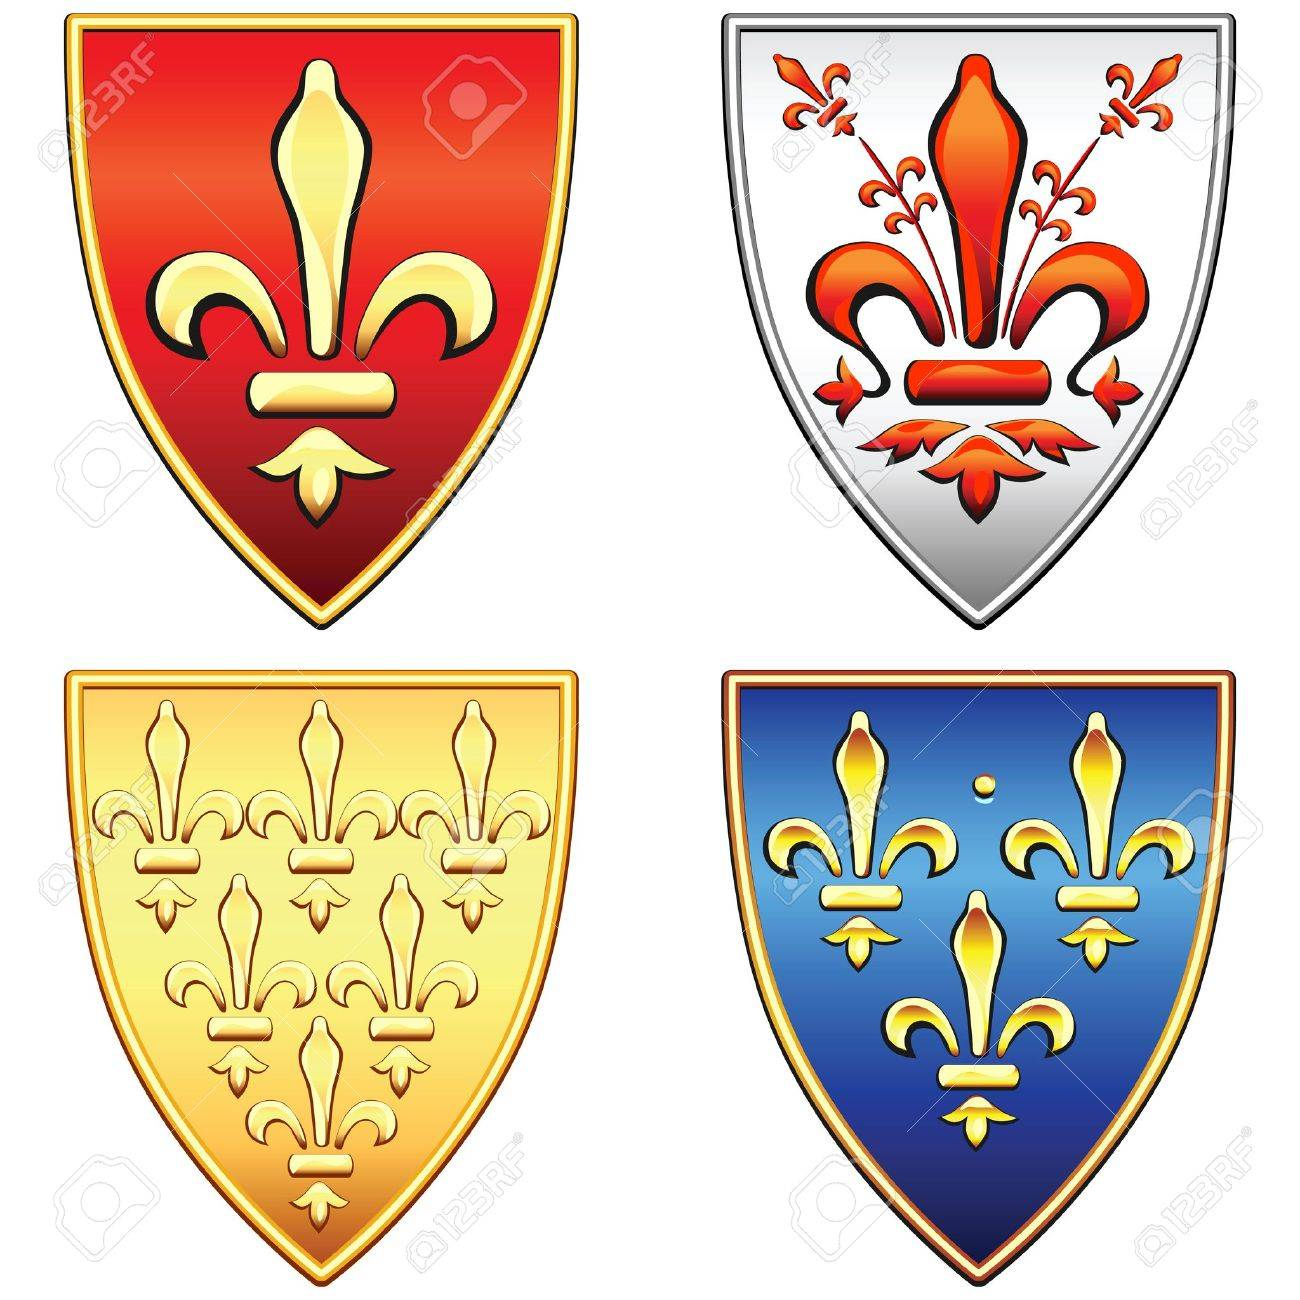 traditional old shields with the arms of France and Florence, lily (fleur de lis) in blue, red, gold, silver background, isolated on white background Stock Vector - 11498473